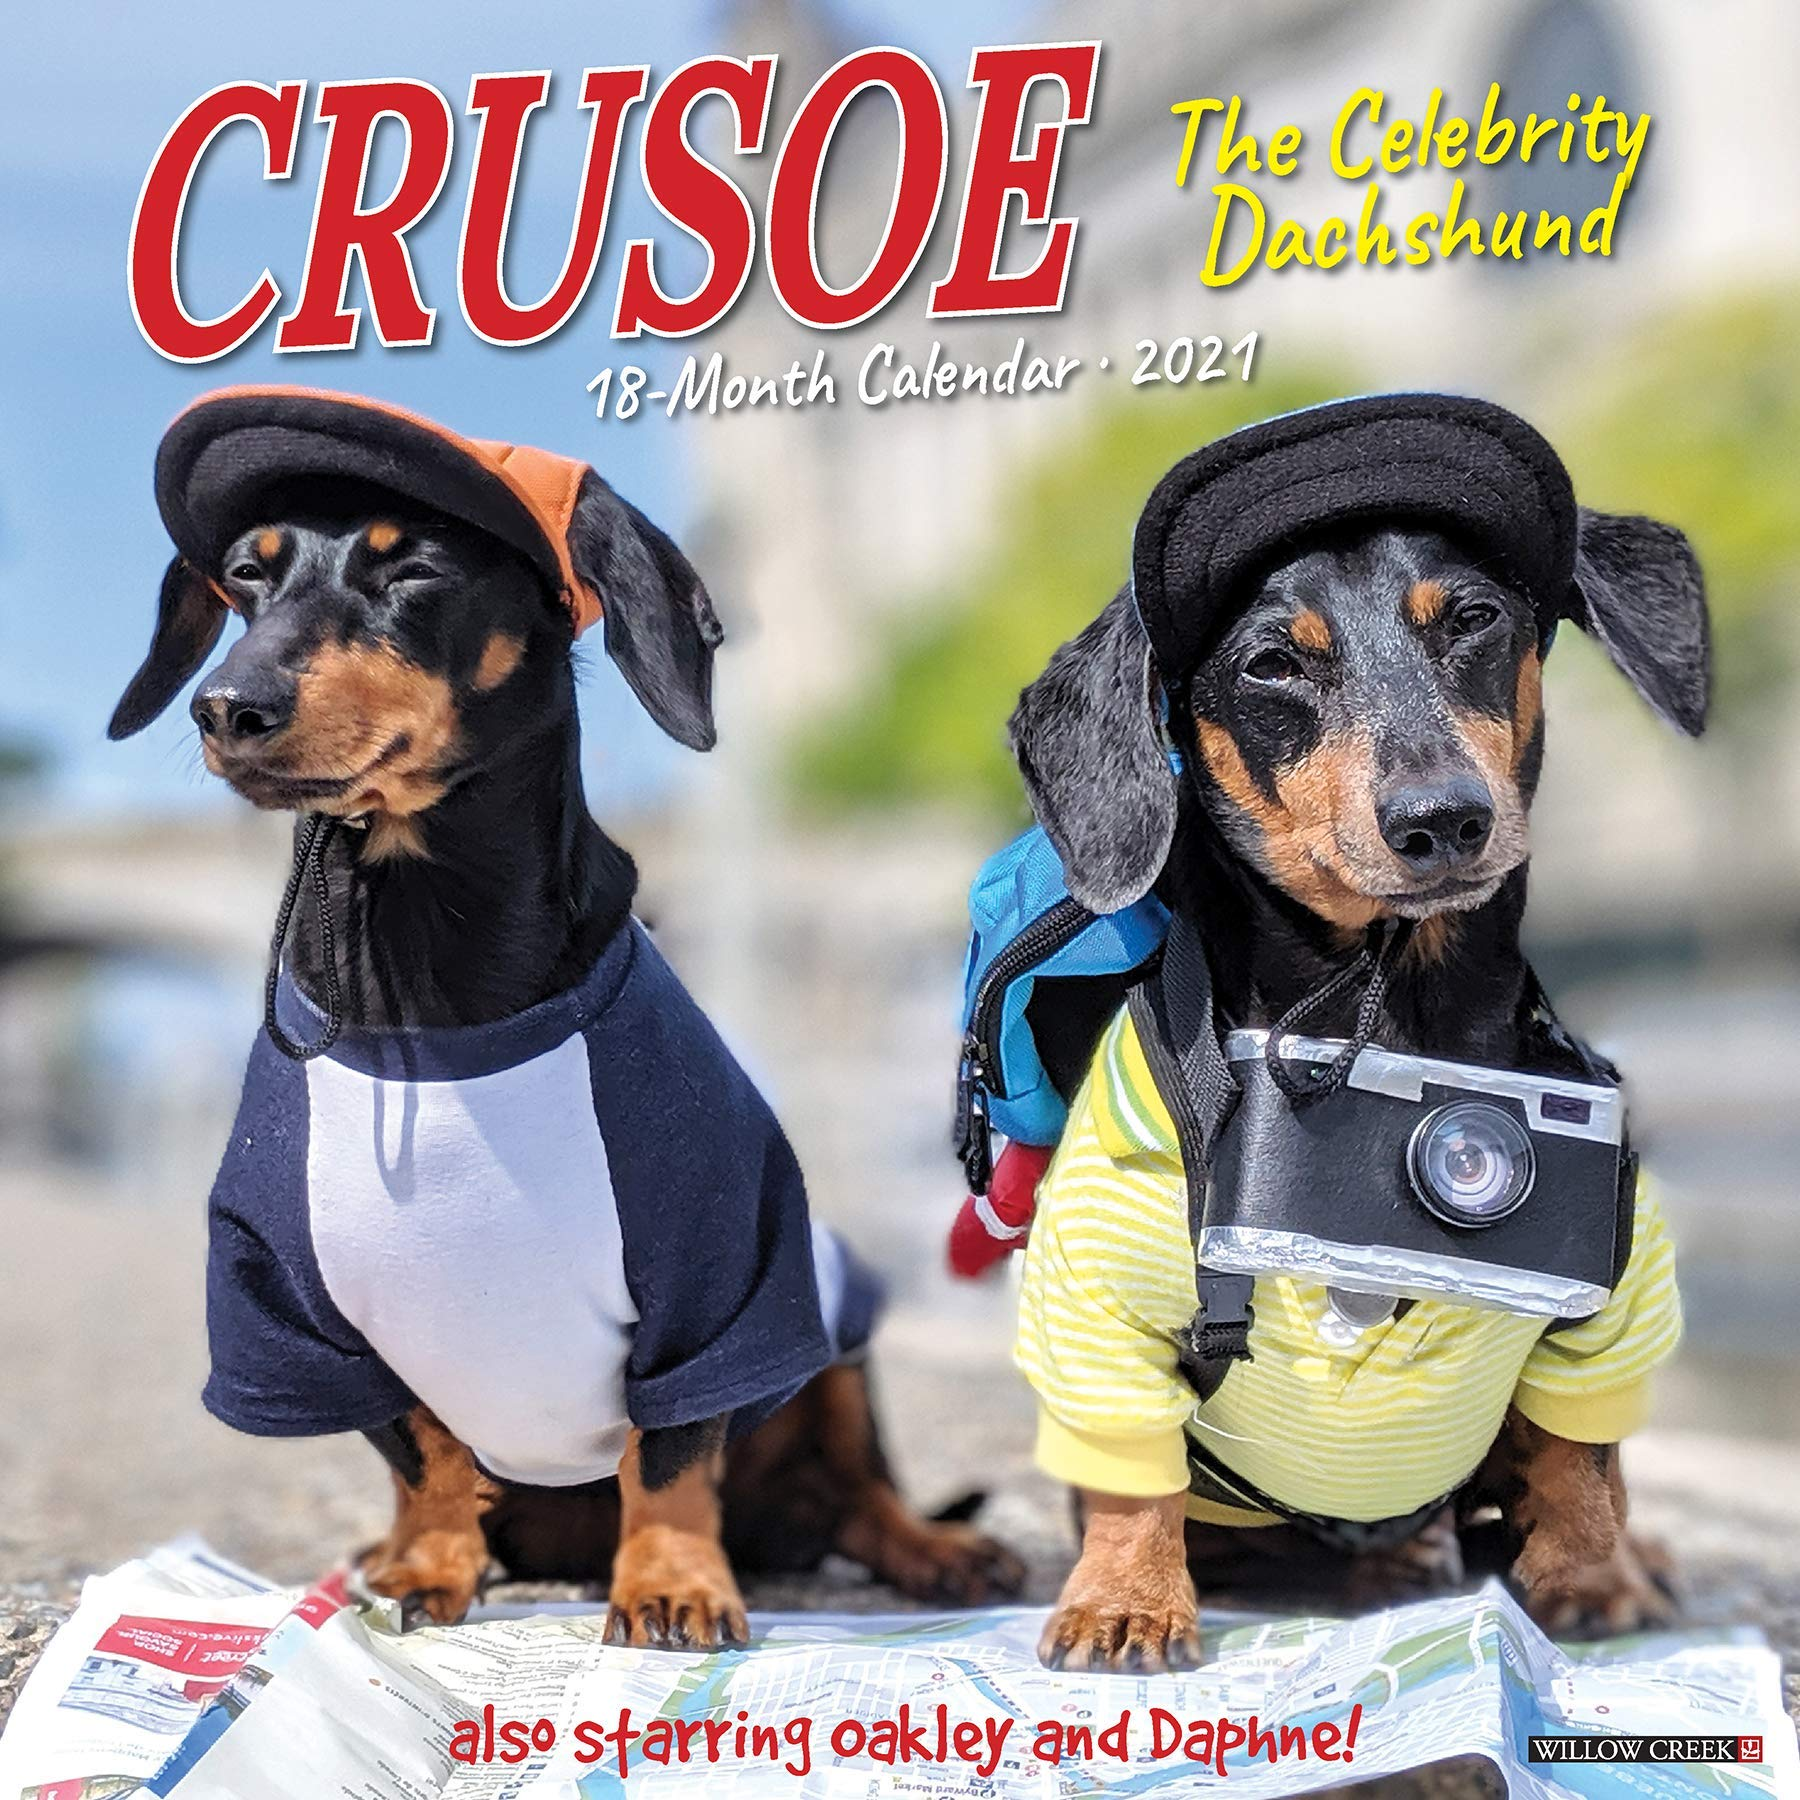 Whelping Calendar 2021 Crusoe the Celebrity Dachshund 2021 Wall Calendar (Dog Breed